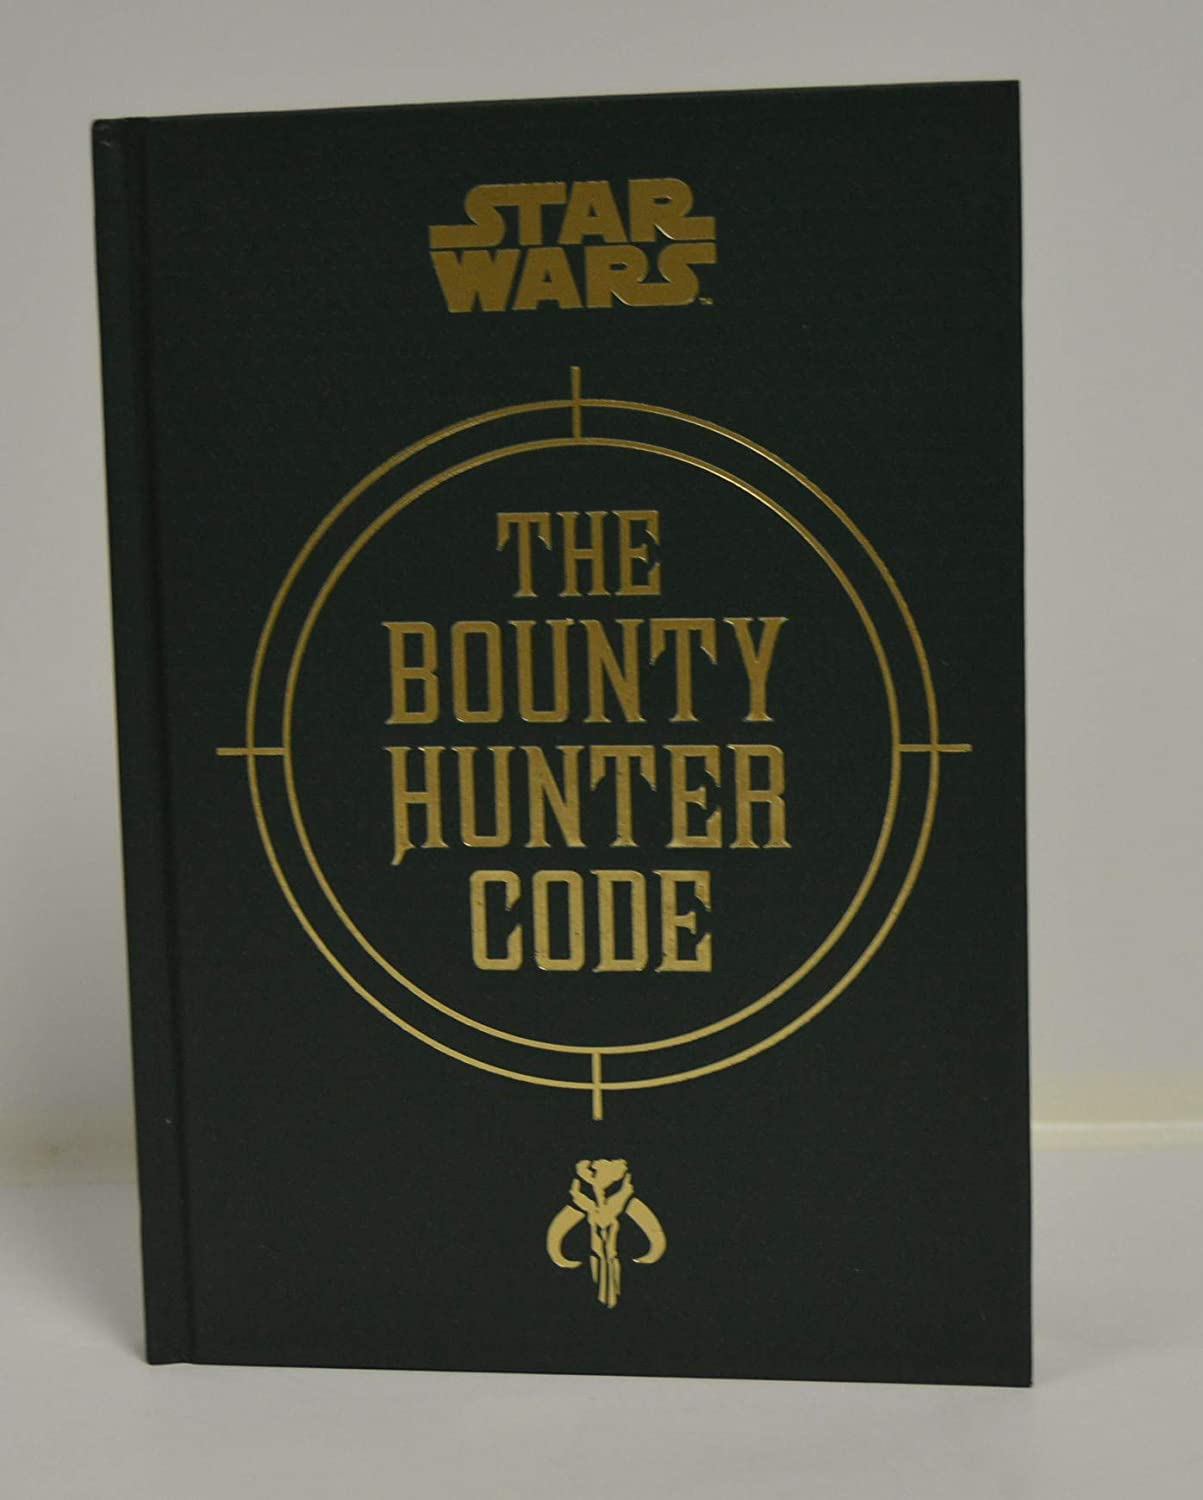 JEREMY BULLOCH signed STAR WARS The Bounty Hunter Code: From the Files of Boba Fett HARDCOVER Book FIRST EDITION